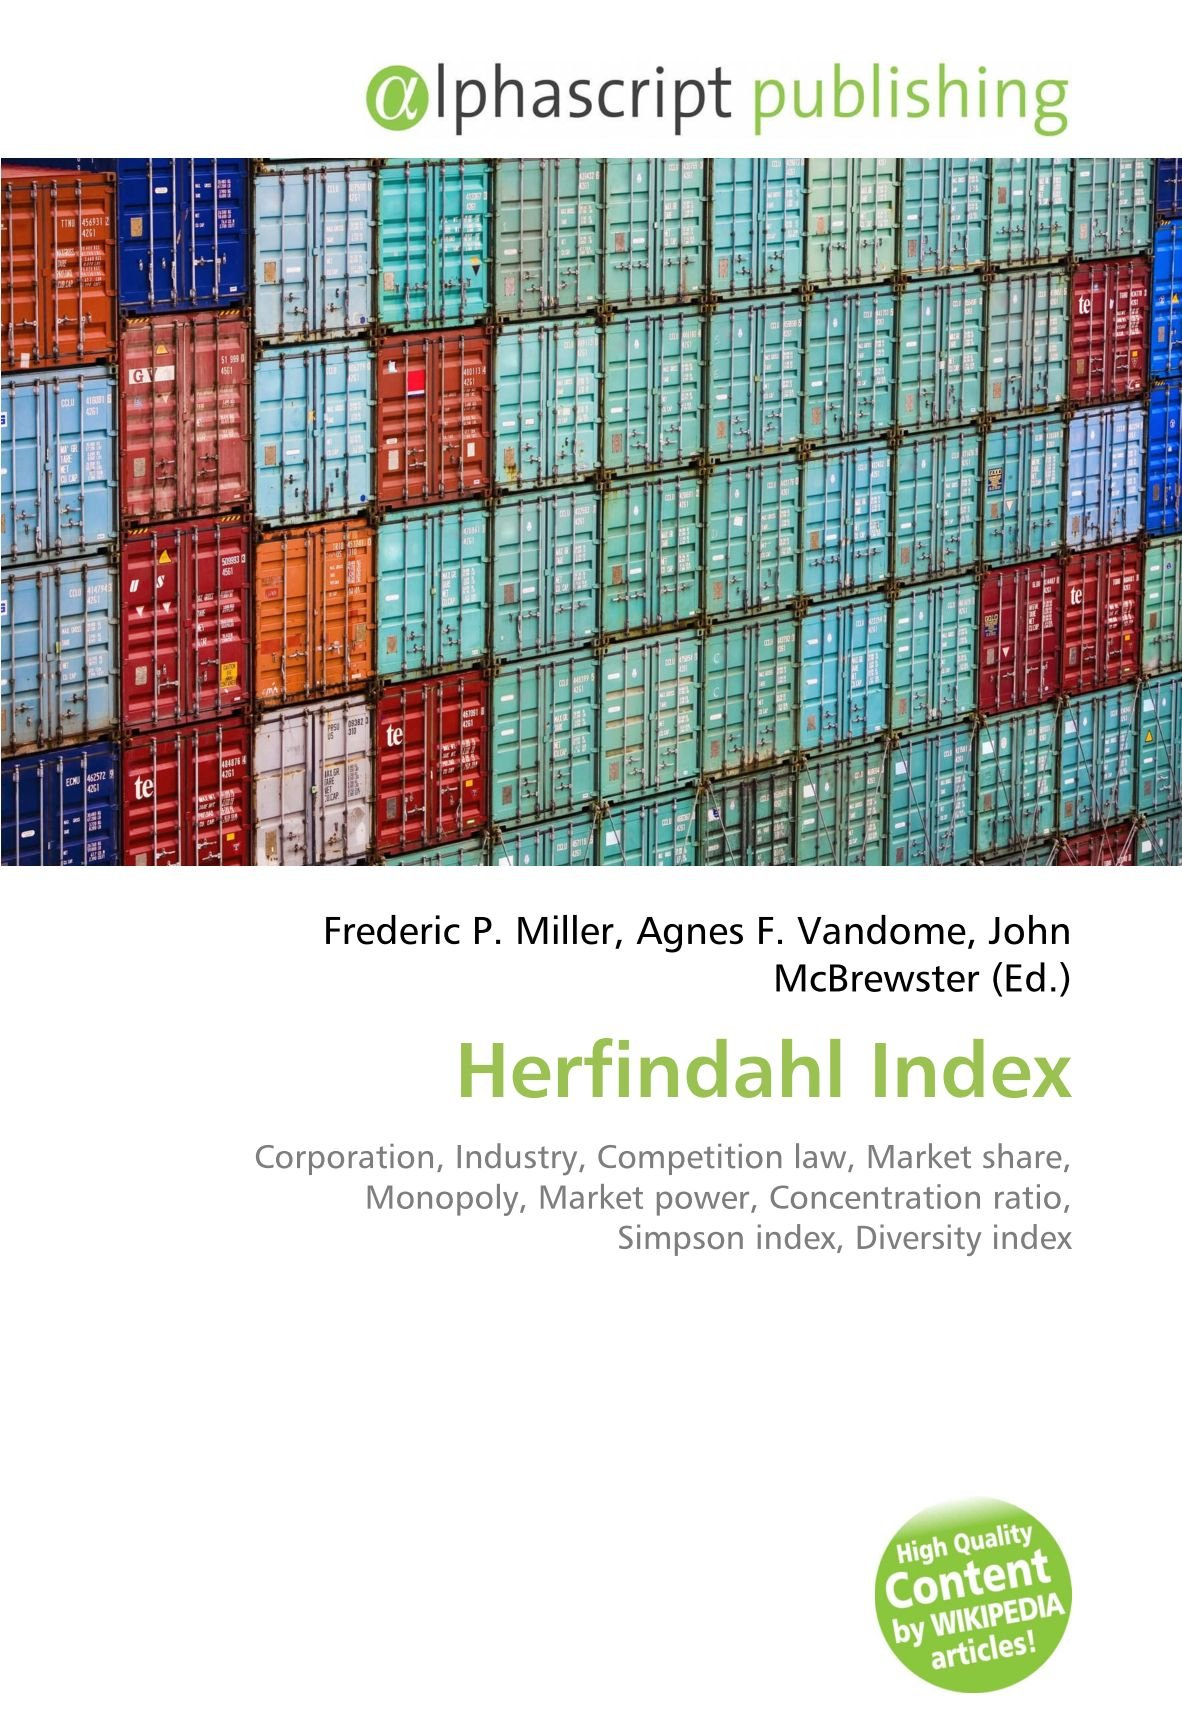 Herfindahl Index: Corporation, Industry, Competition law, Market share, Monopoly, Market power, Concentration ratio, Simpson index, Diversity index: Amazon.es: Miller, Frederic P., Vandome, Agnes F., McBrewster, John: Libros en idiomas extranjeros